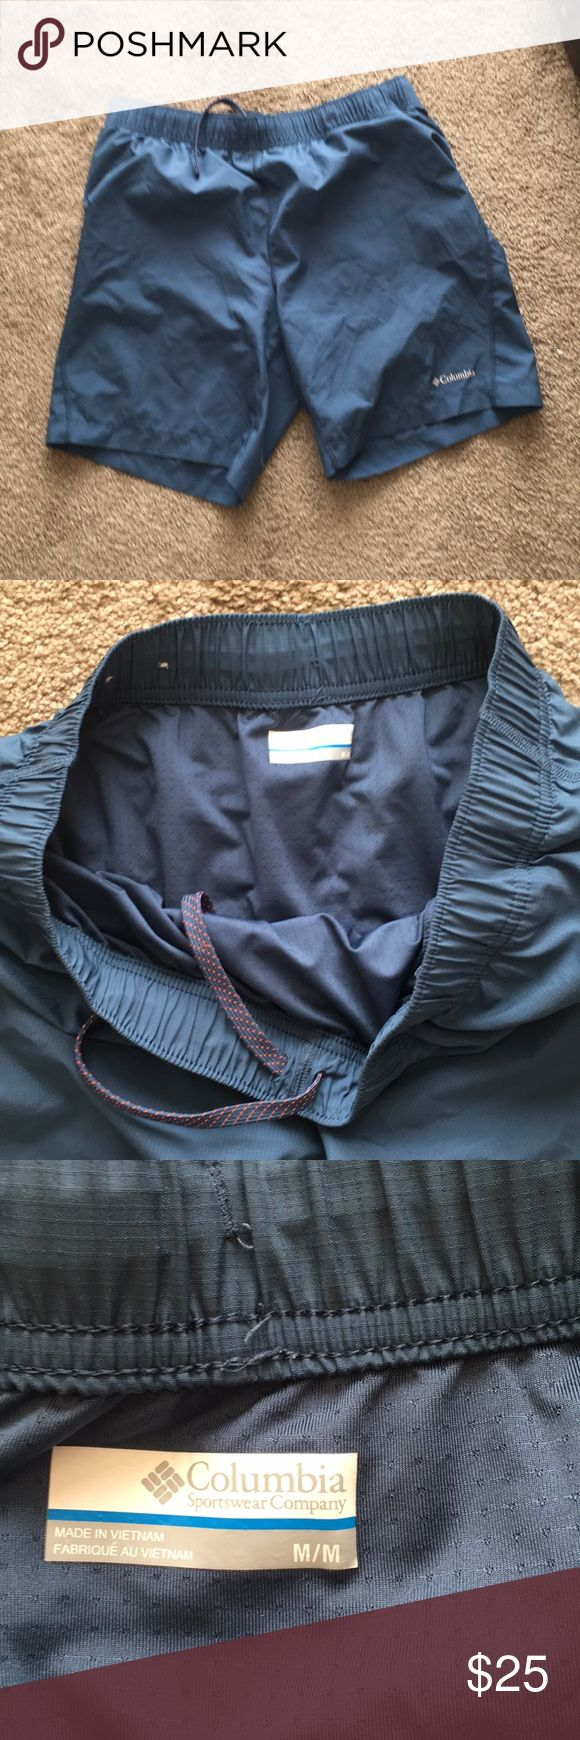 Columbia shorts Mesh underwear thing attached. My husband wore them a few times fishing. Great condition Columbia Shorts